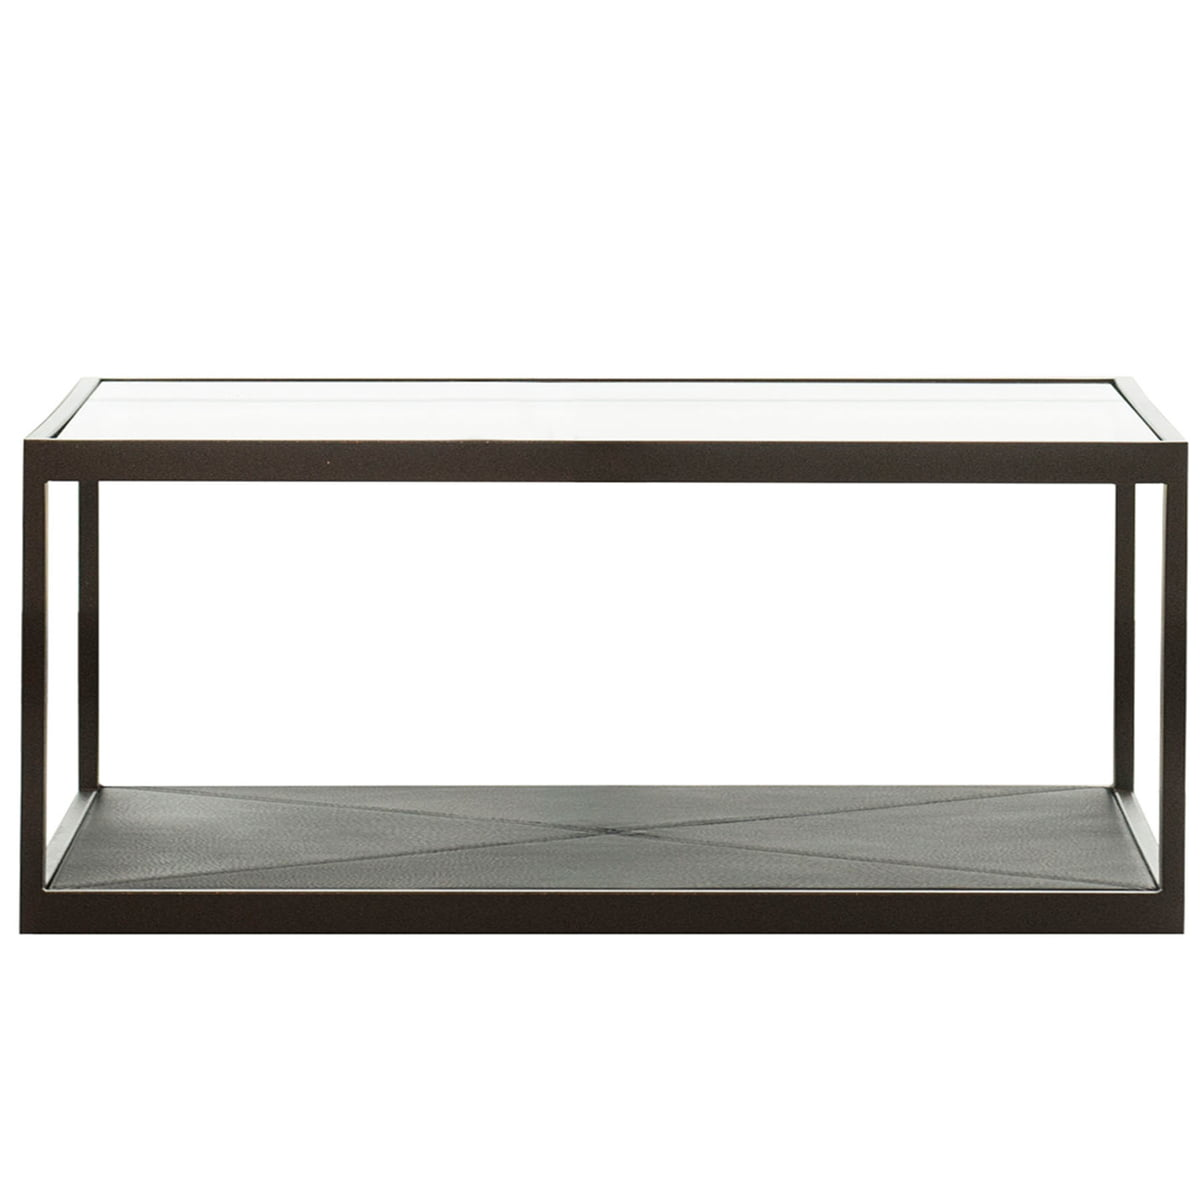 Monaco coffee table 50 x 50cm from rshults in the shop monaco coffee table 115 x 115 cm by rshults in black with black leather geotapseo Gallery